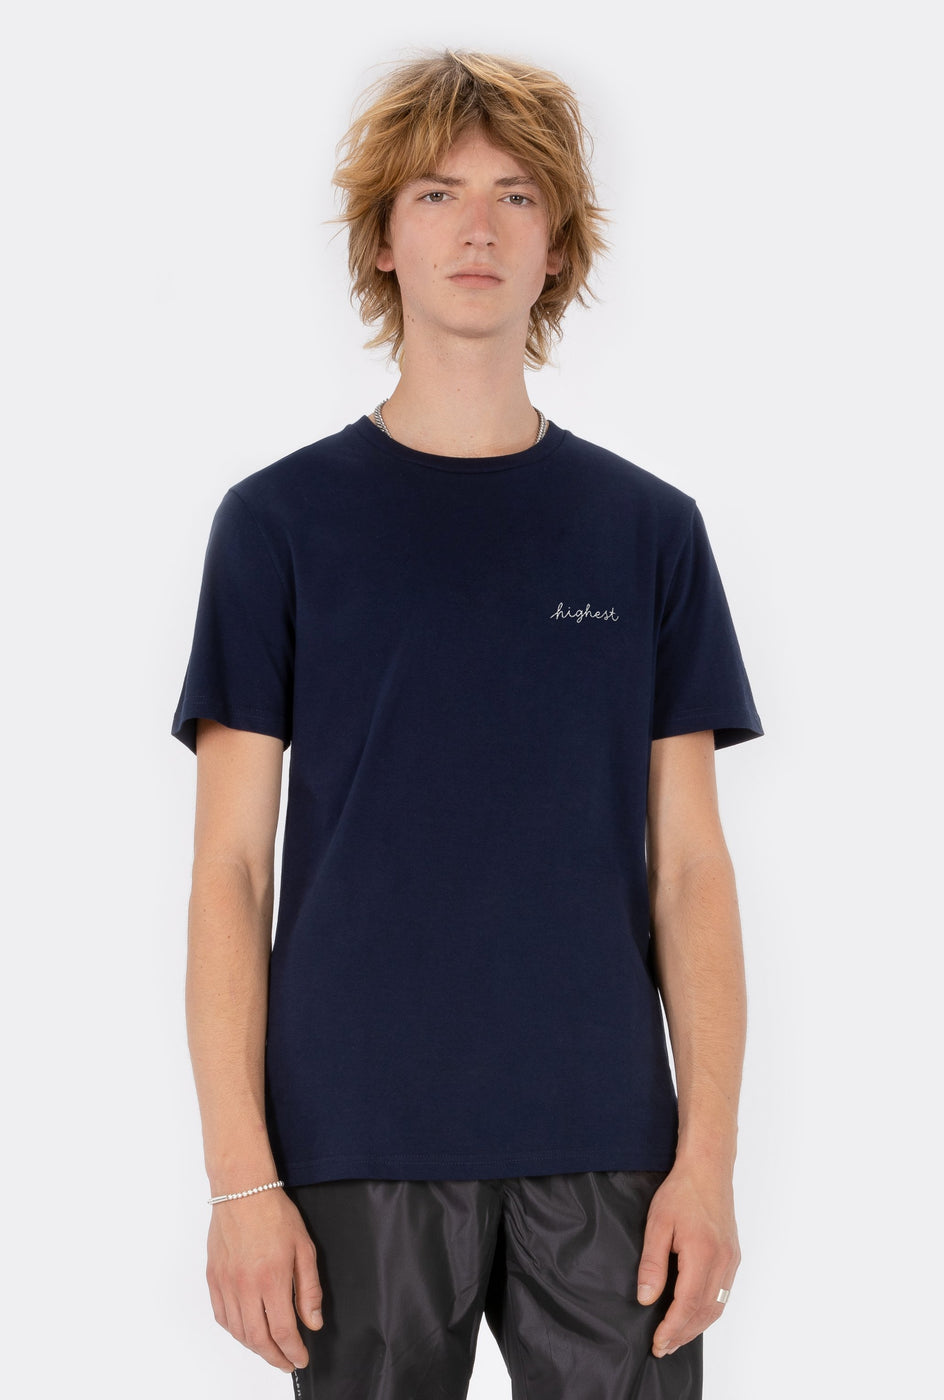 T-Shirt S/S Highest - Embroidered